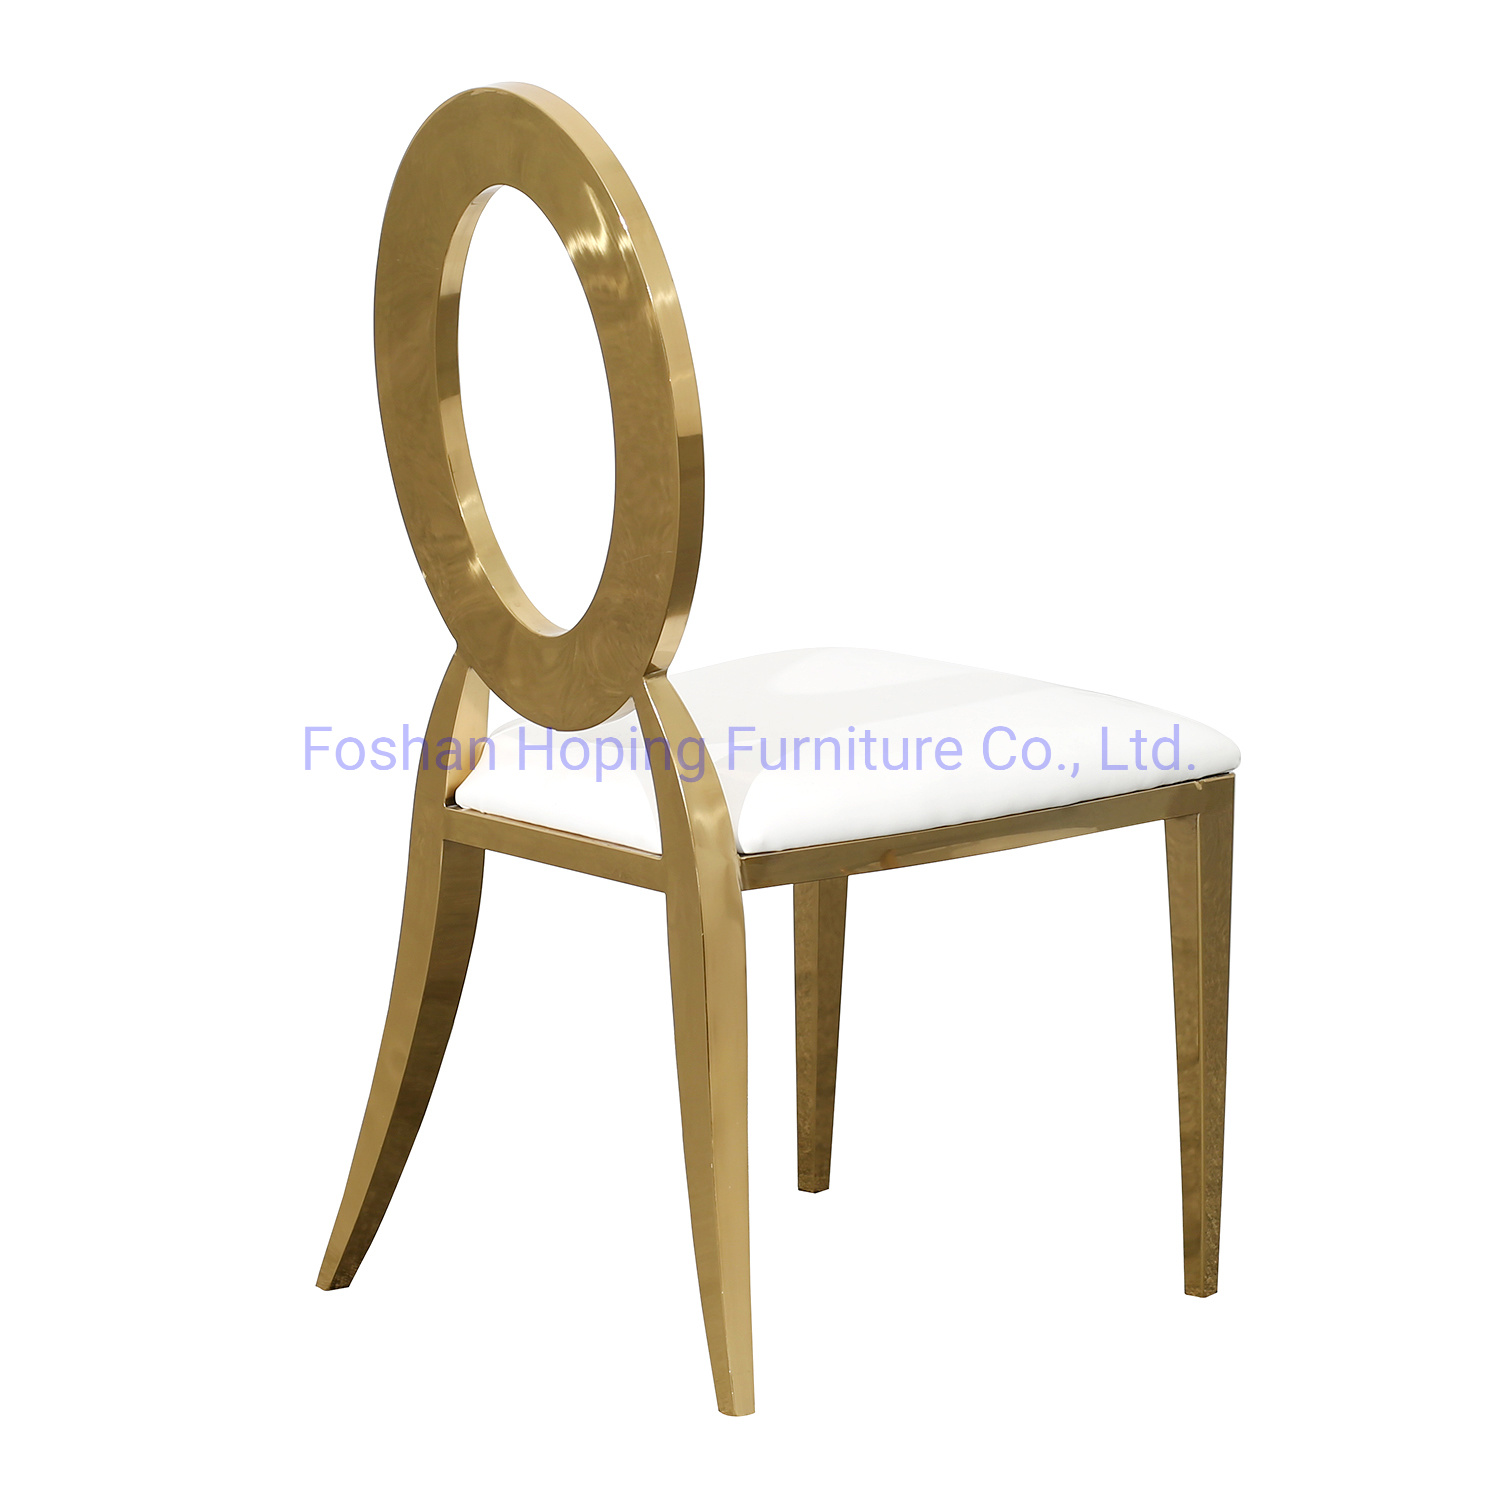 China Ebay Wedding Chair Sashes Rustic Wedding Furniture Rental Dining Room Furniture China Dining Table Chair Dining Series Chair